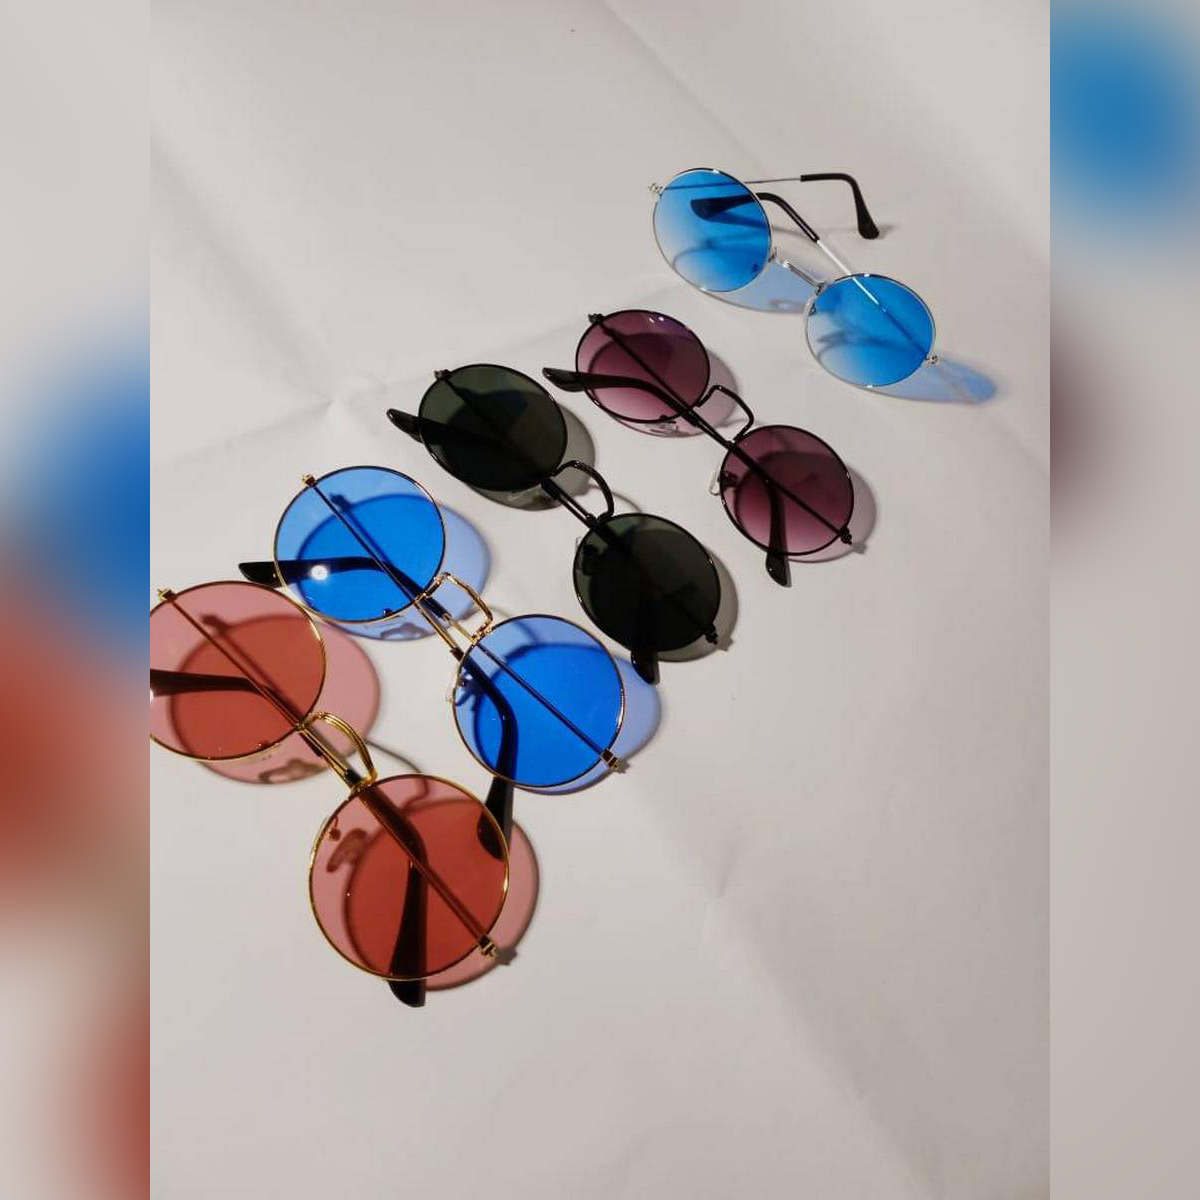 High Quality Men's Sun Glasses in Different Shades